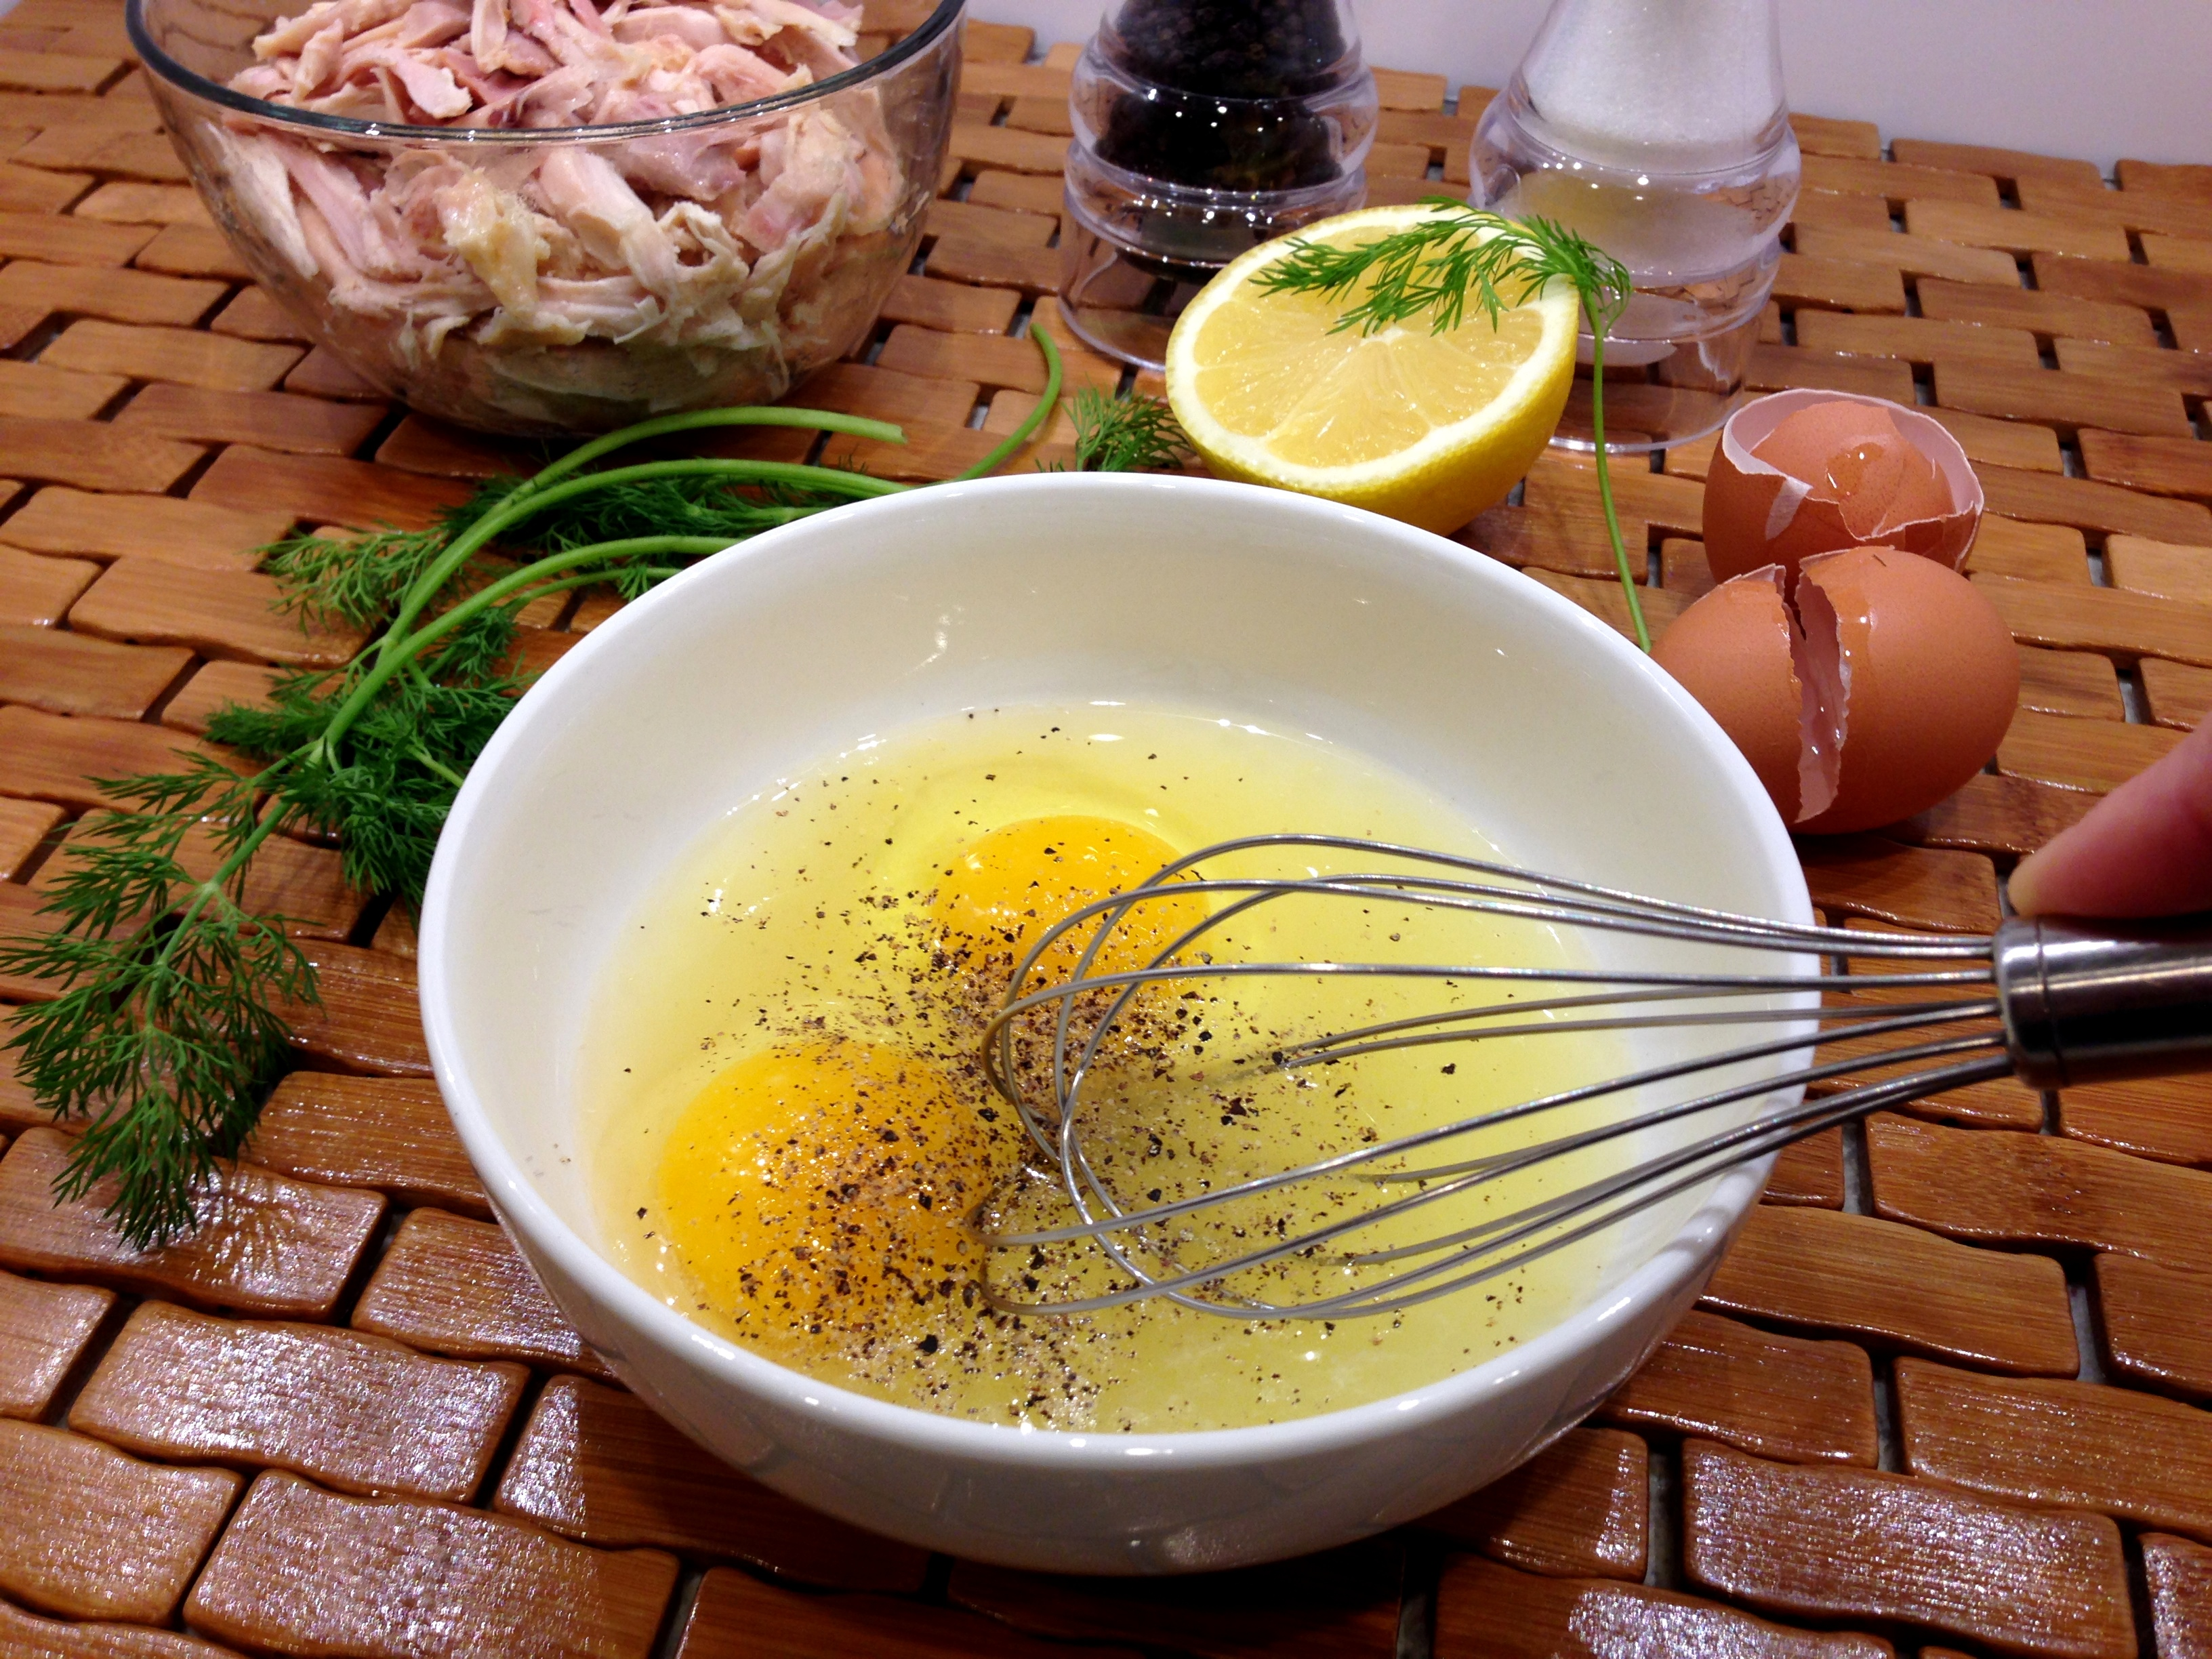 Whisk eggs and lemon